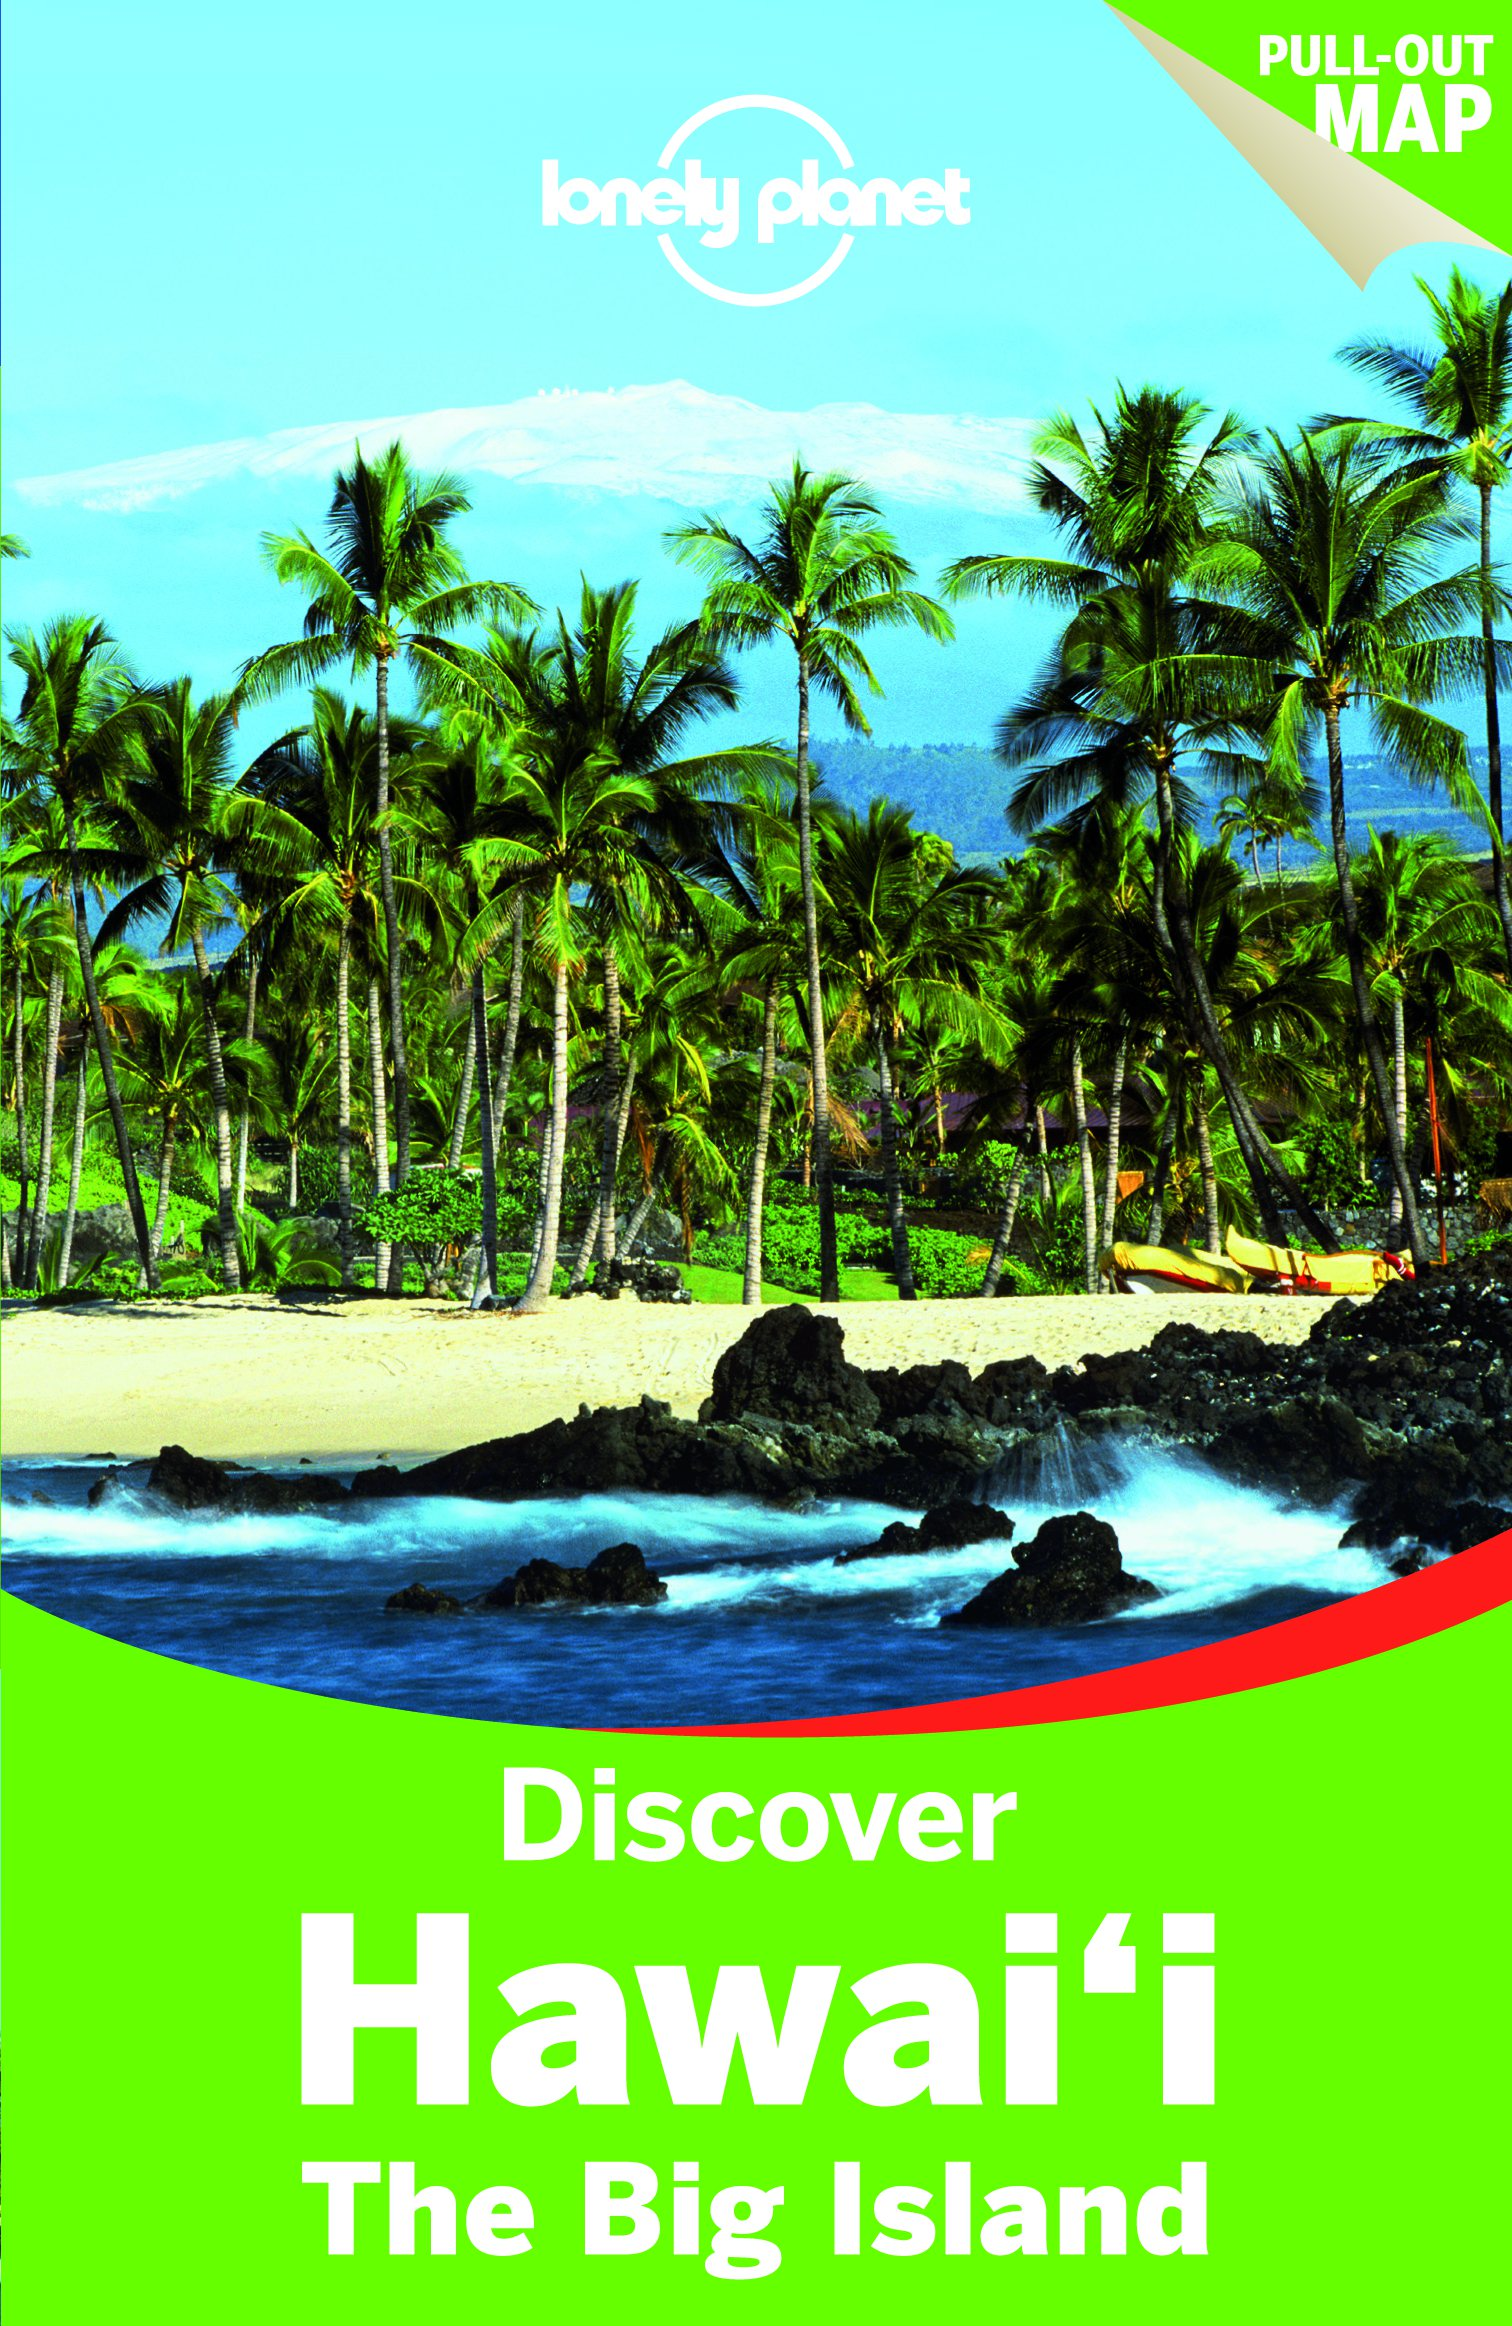 Discover Hawaii the Big Island průvodce 2nd 2014 Lonely Planet